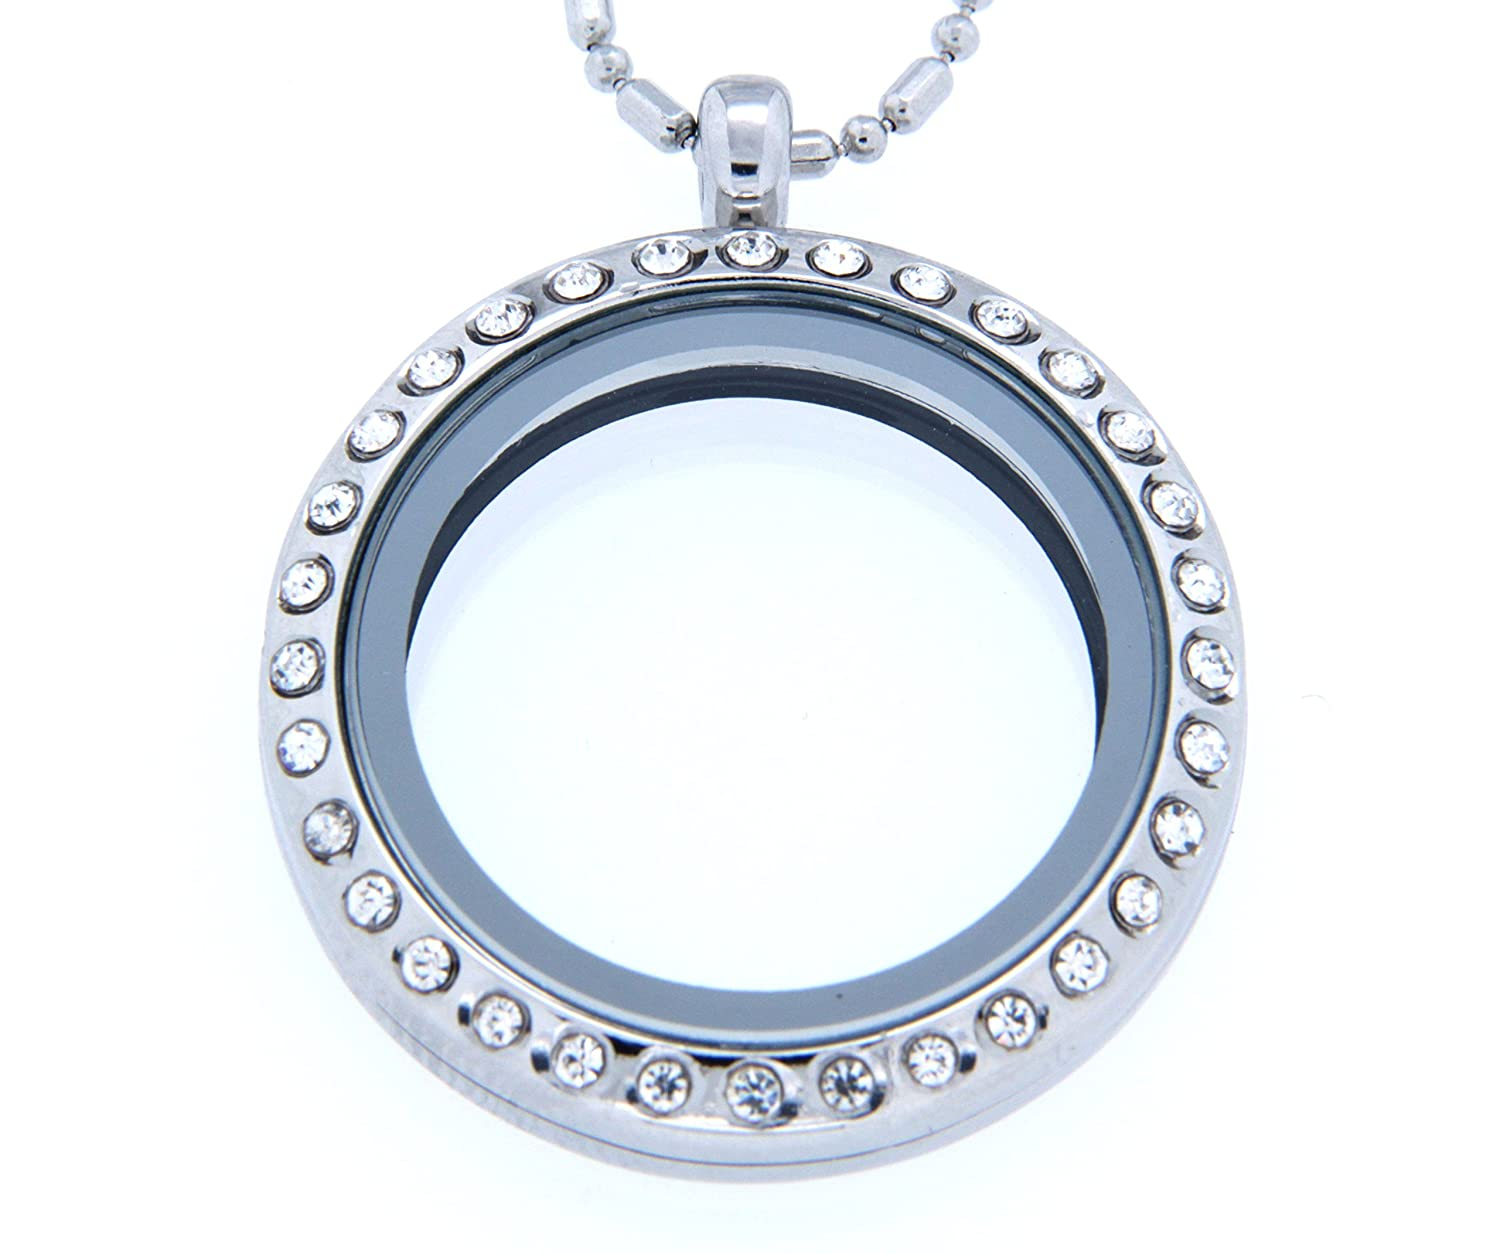 pandora design protect walls best display classic locket its jewelry on glass way lovingly pinterest clear in silver and images frame s with necklace elegant floating lockets officialpandora sterling charms